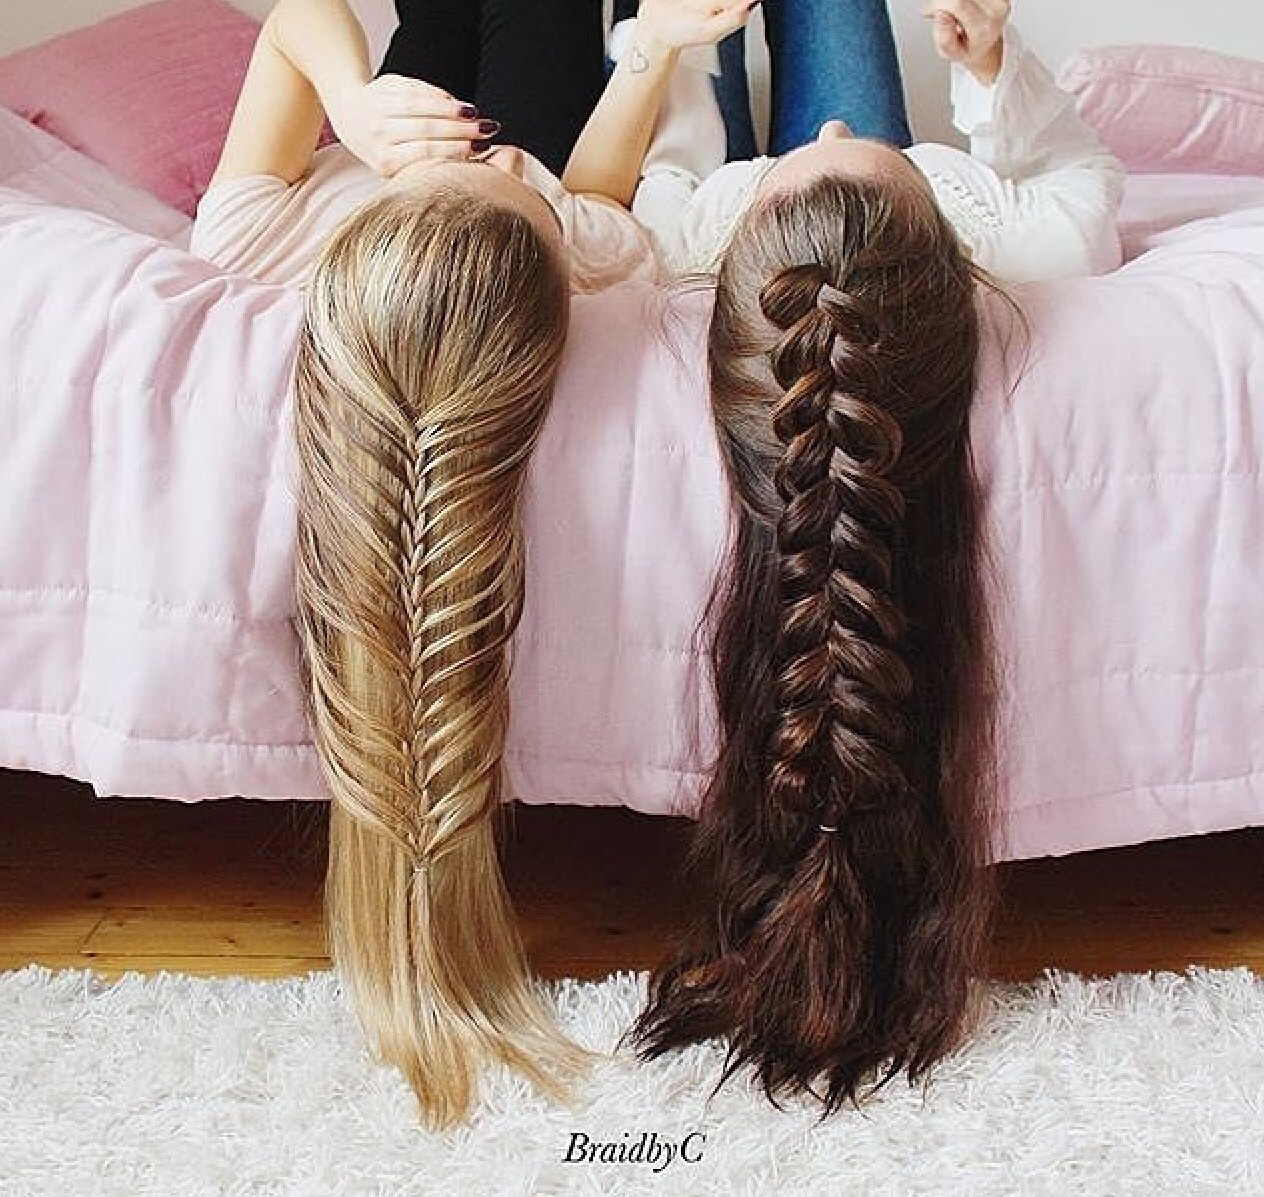 beauty, best friend, bff, blonde hair, braid